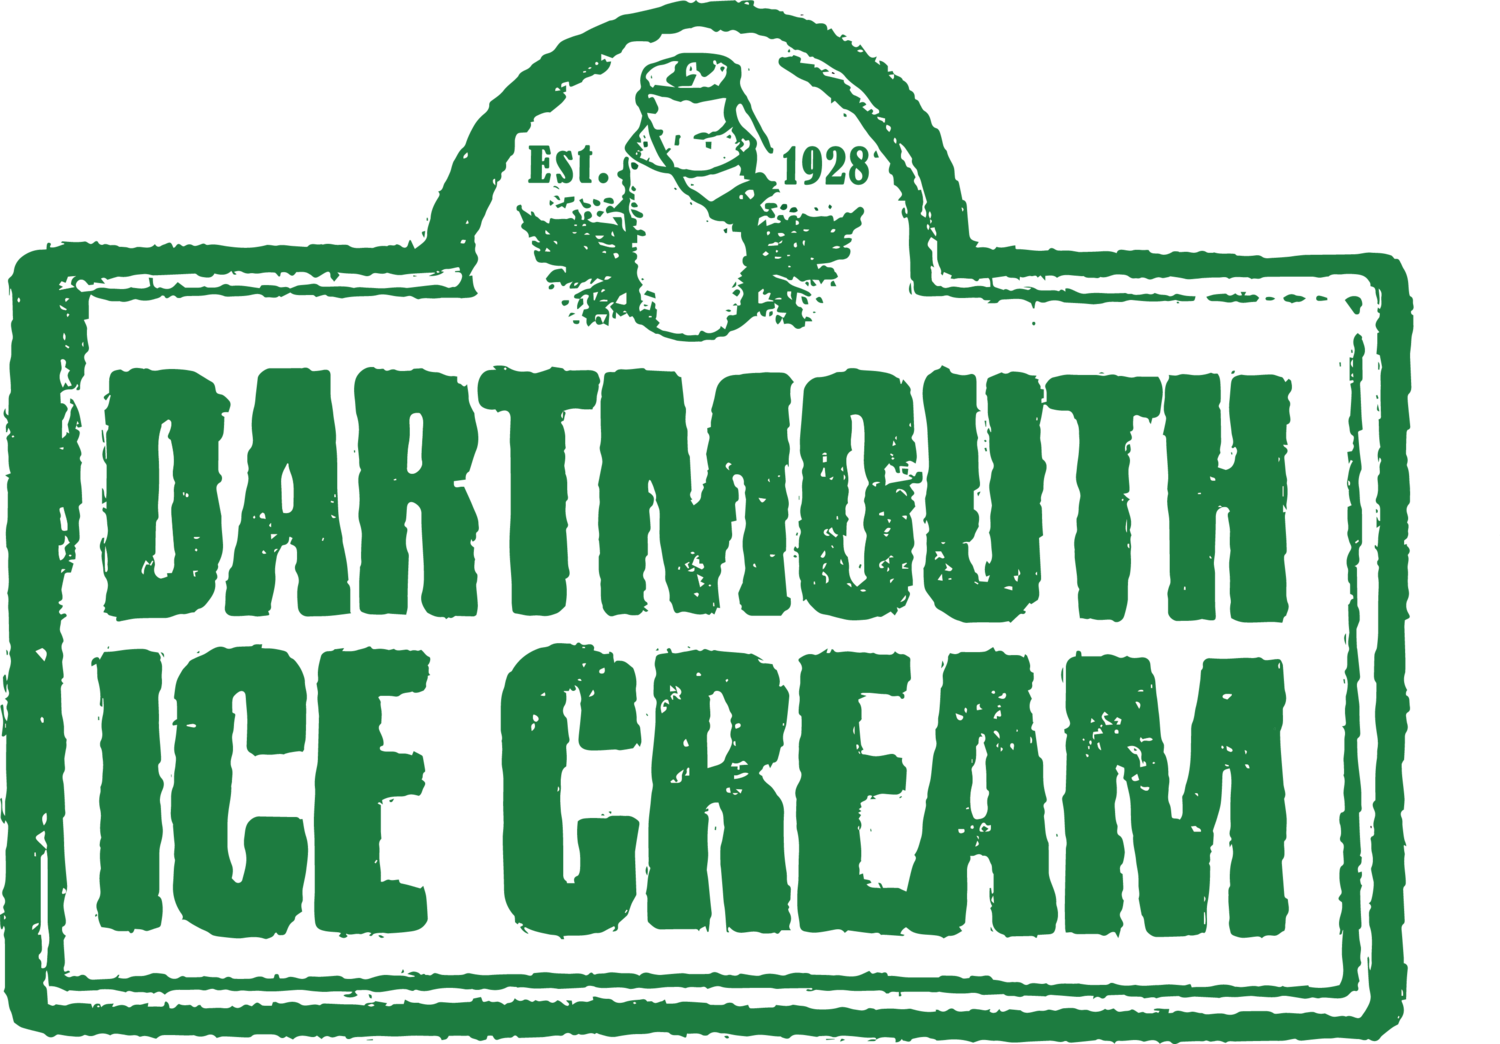 The Dartmouth Ice Cream Company